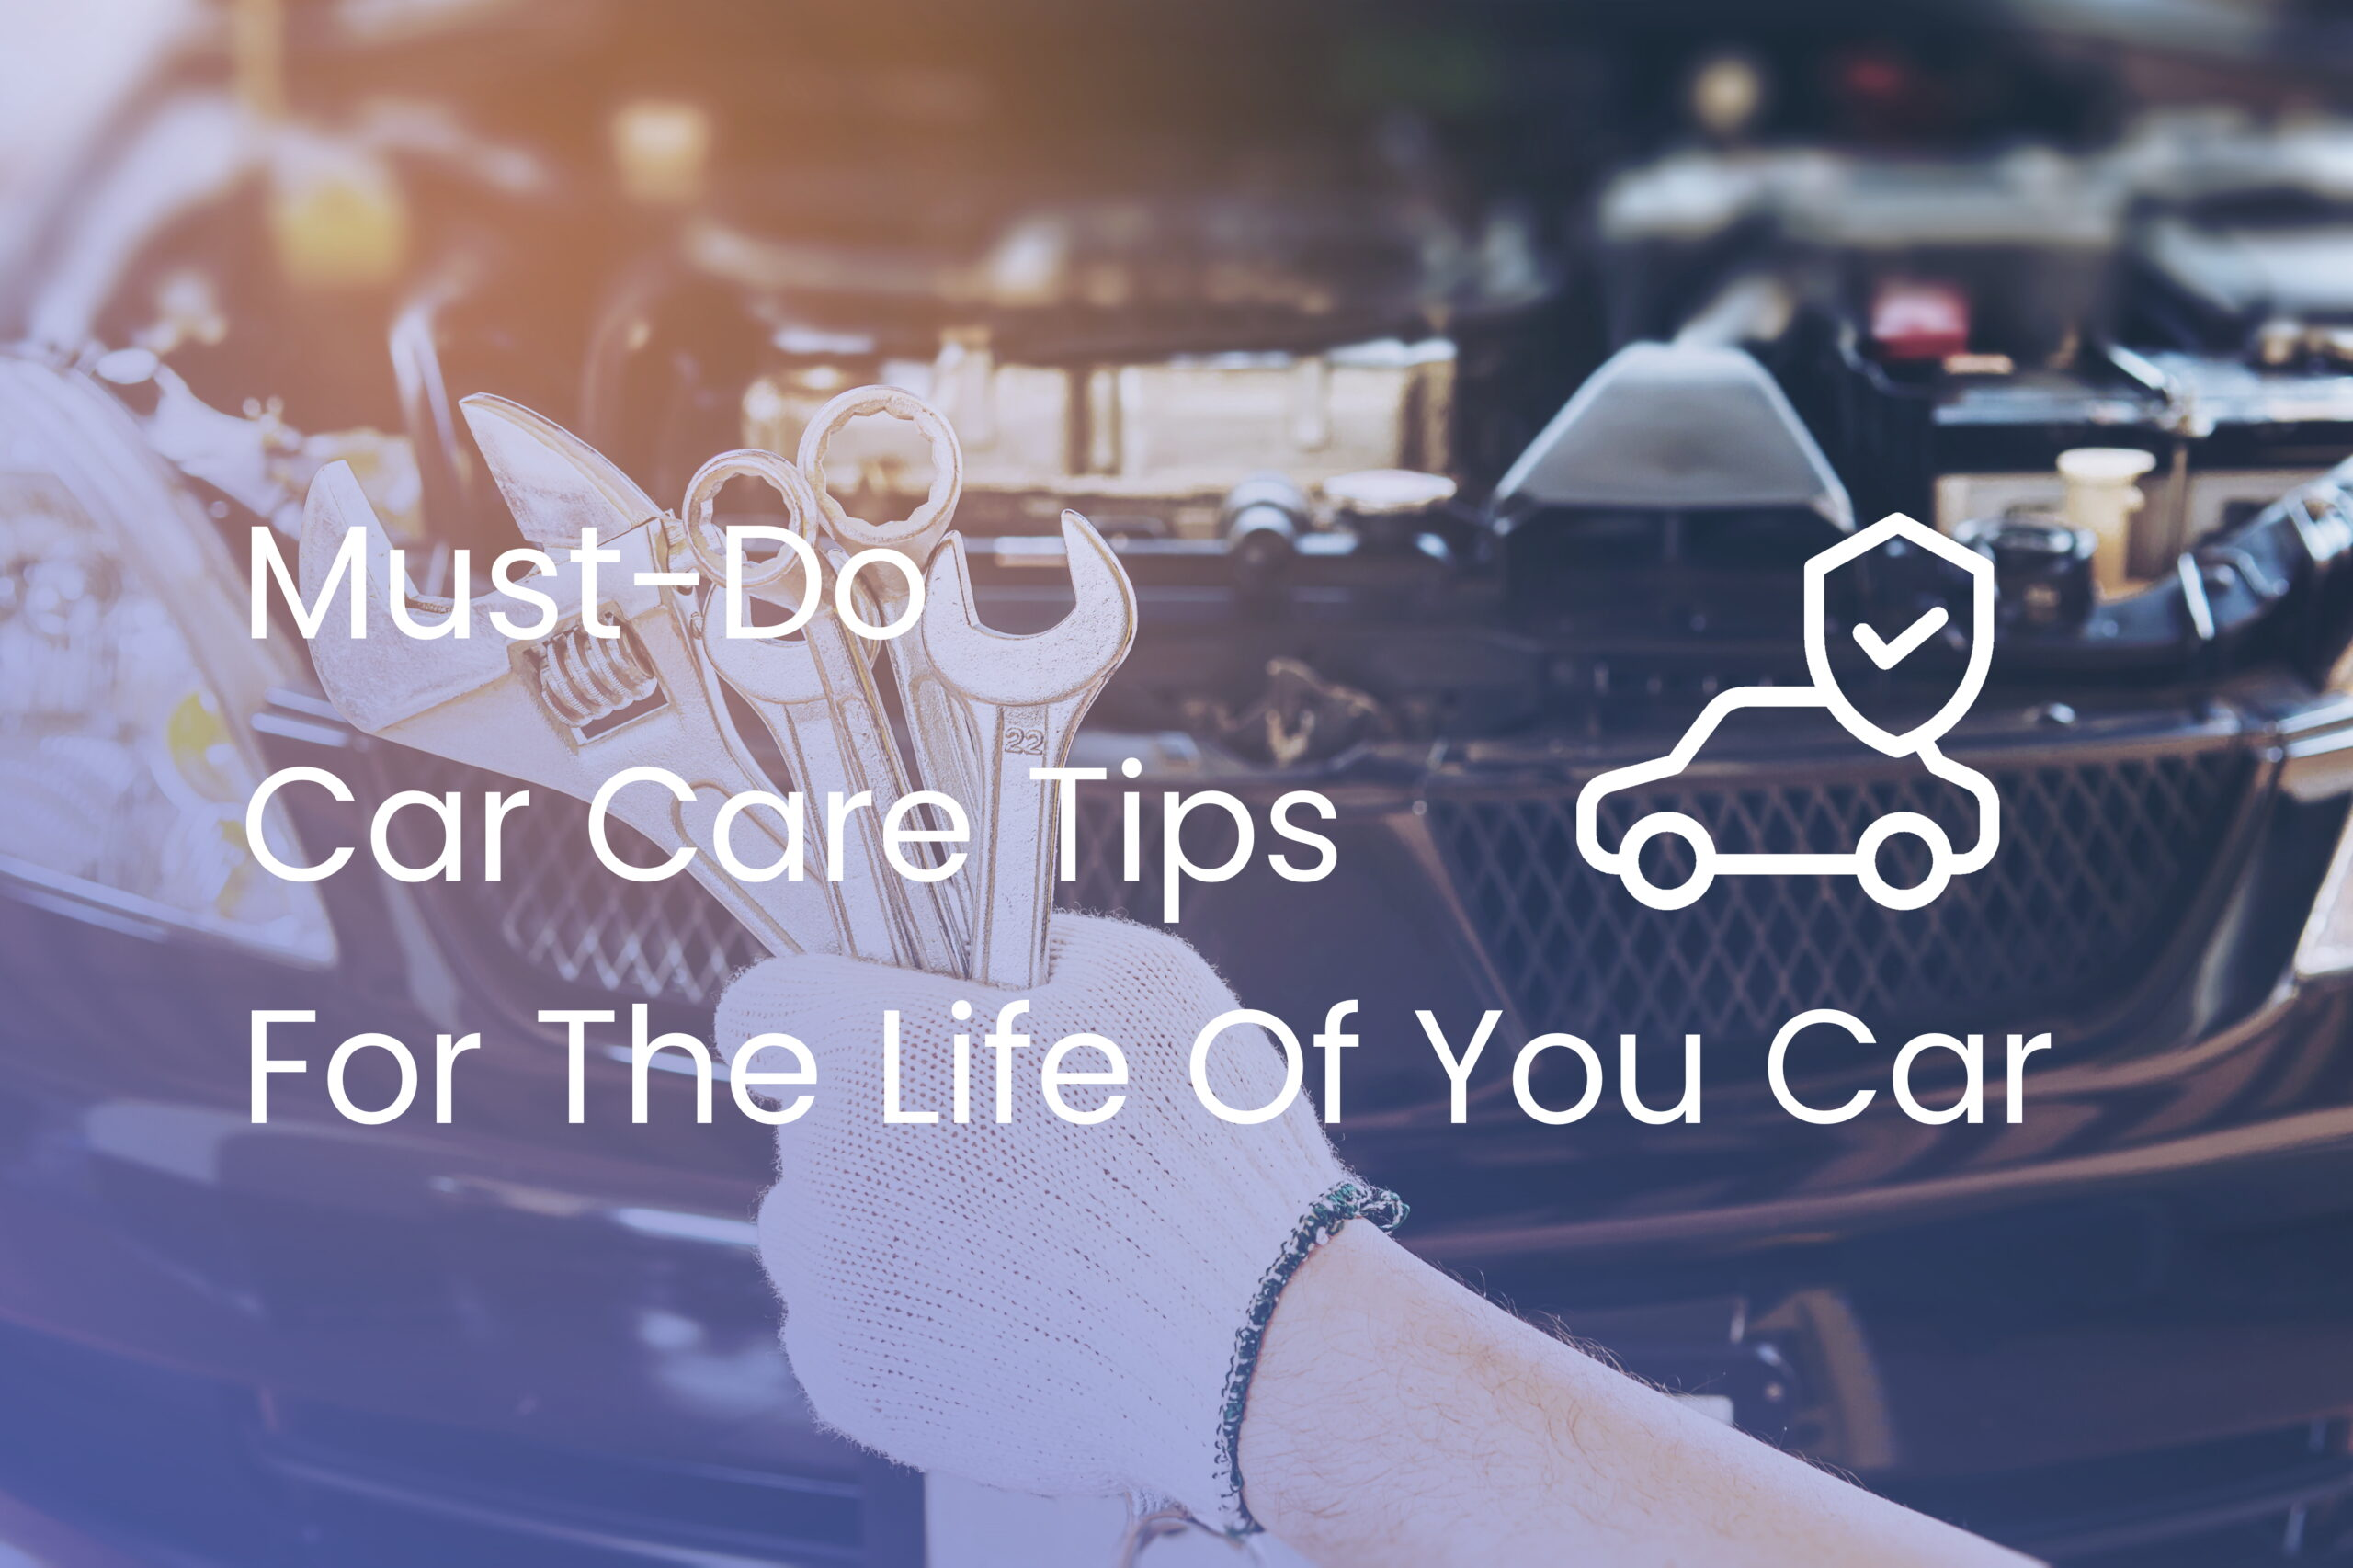 Must-Do Car Care Tips To Extend The Life Of Your Car - Getgoing.ca